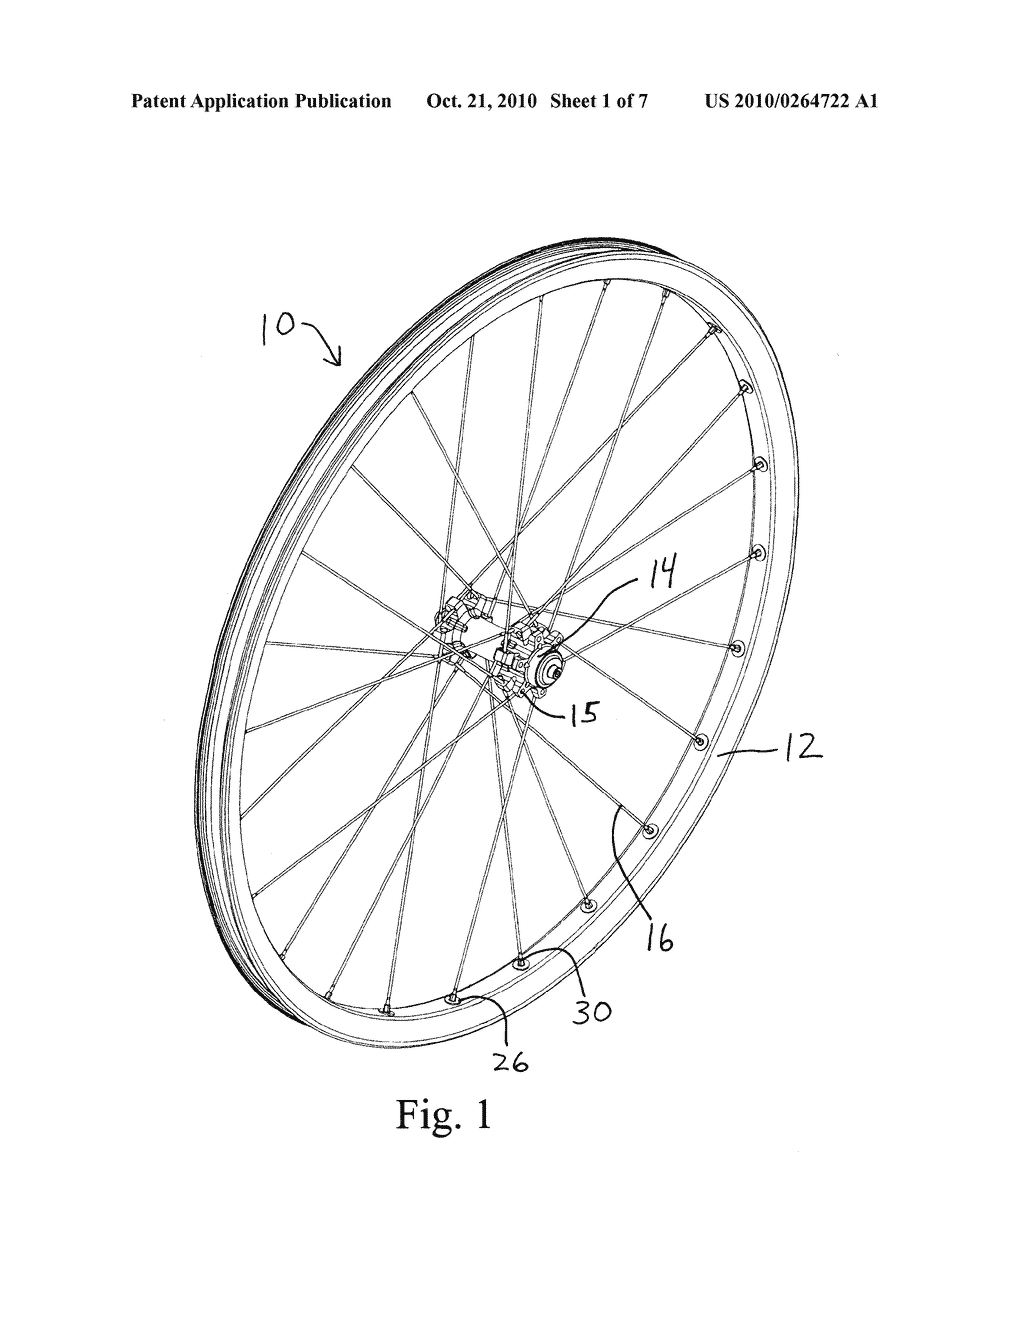 Bicycle Spoke Diagram Wiring Diagrams Of Parts Rim With Mechanical Attachment Schematic Rh Patentsencyclopedia Com Product Headset